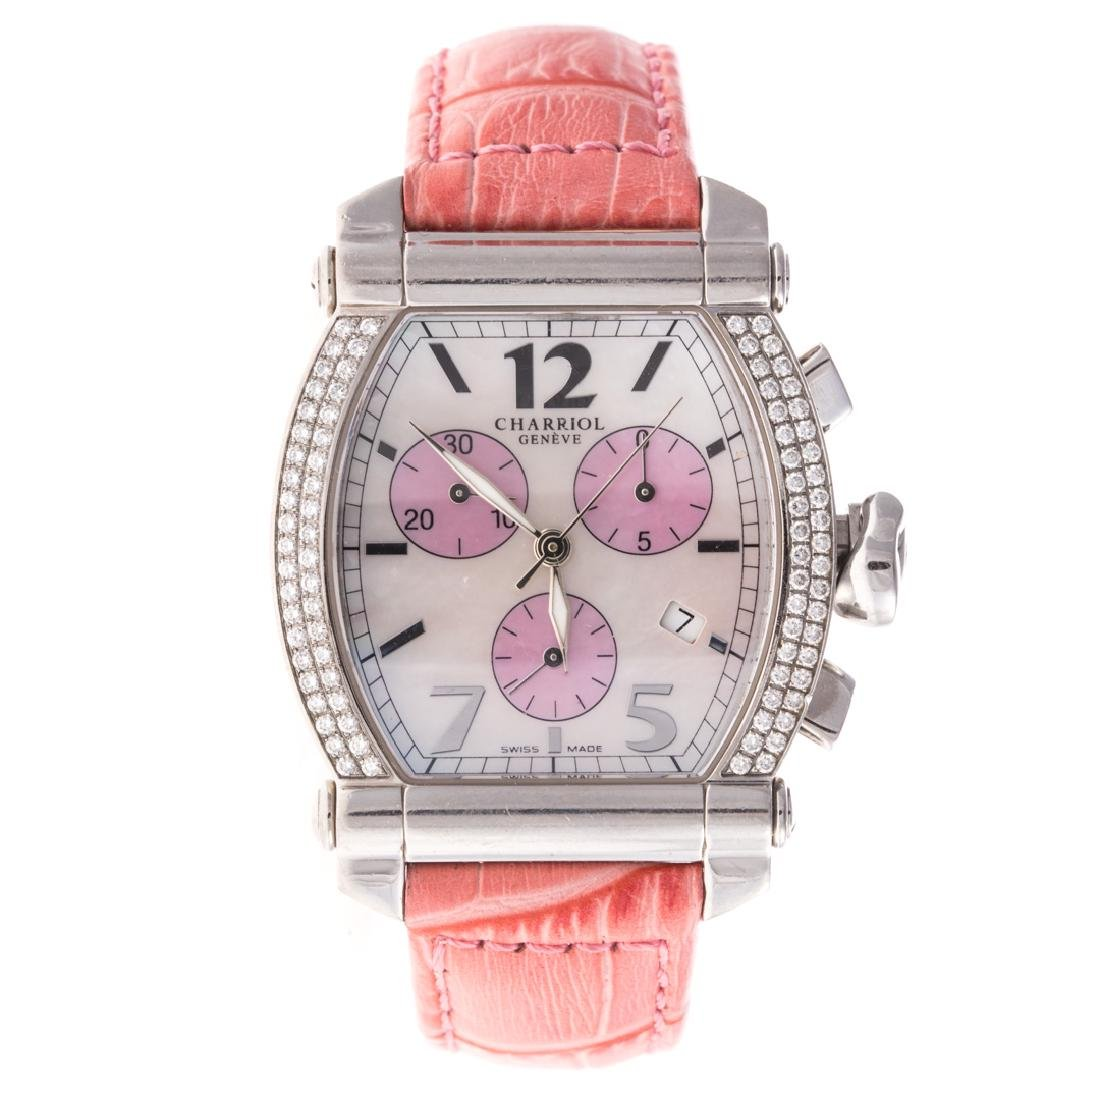 A Lady's Charriol Columbus Watch with Diamonds